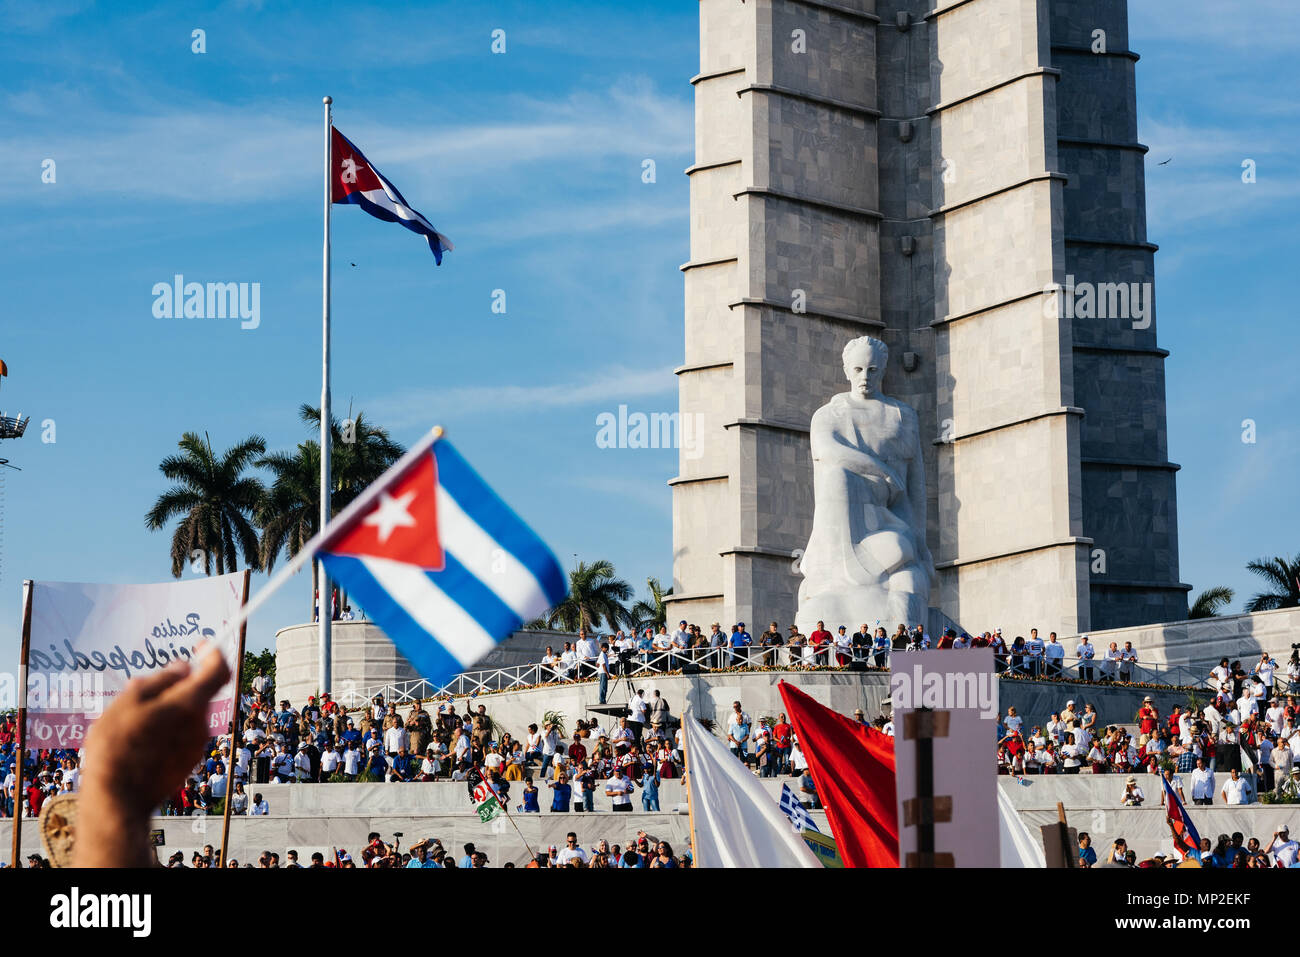 Havana, Cuba. May 1st 2018 Cubans marching in the celebration for International Worker's Day passing by the monument to Jose Marti.  Caleb Hughes/Alamy Live News - Stock Image